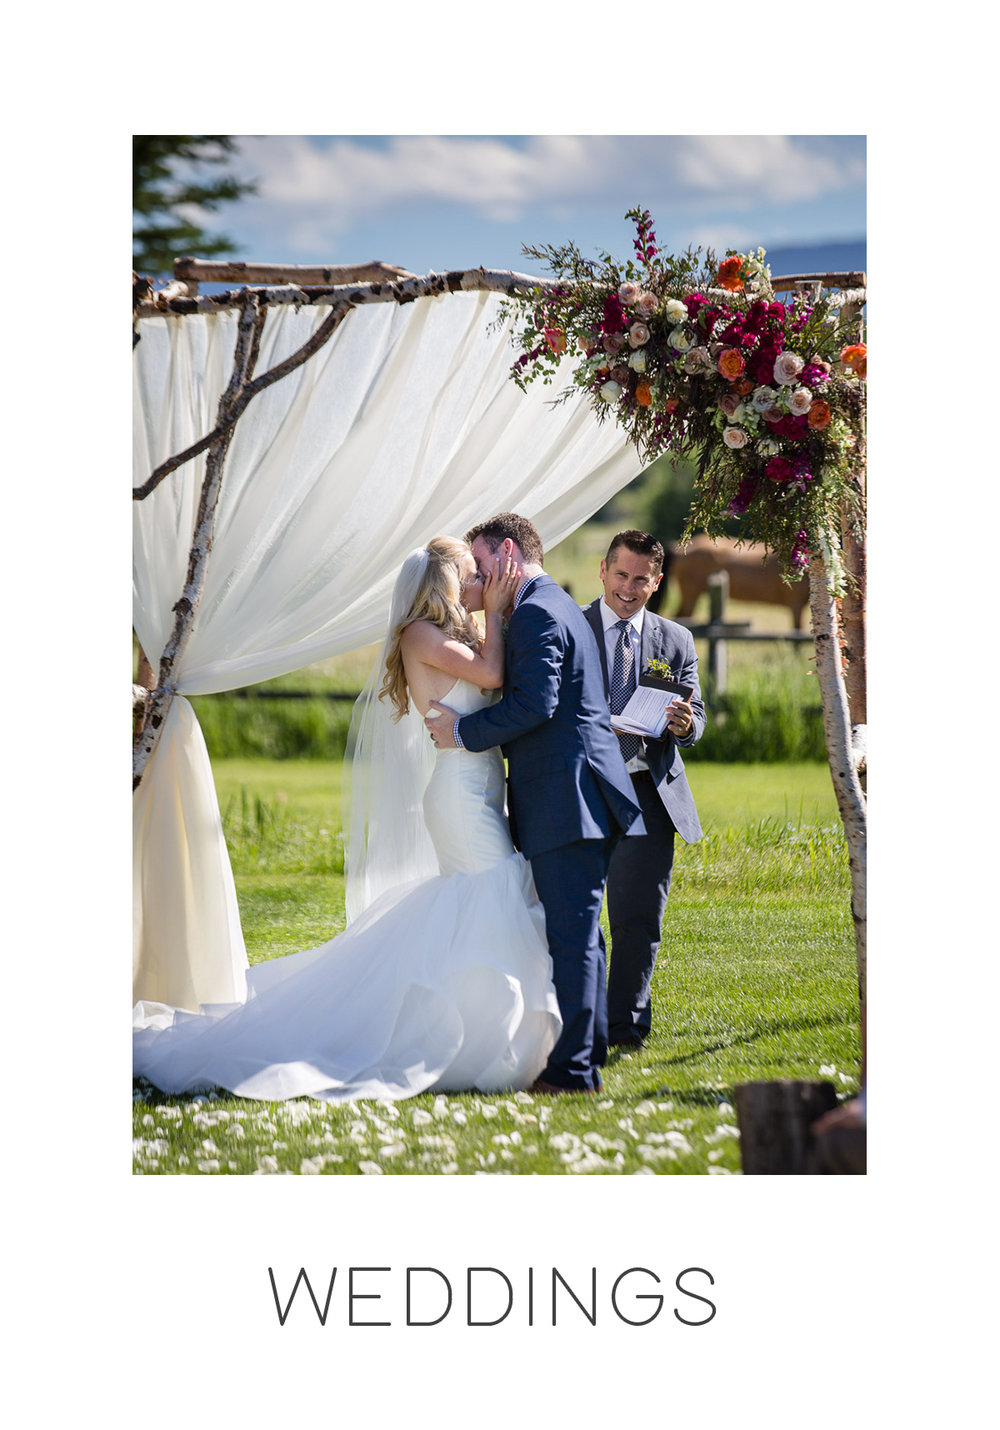 gallerybutton_wedding3.jpg